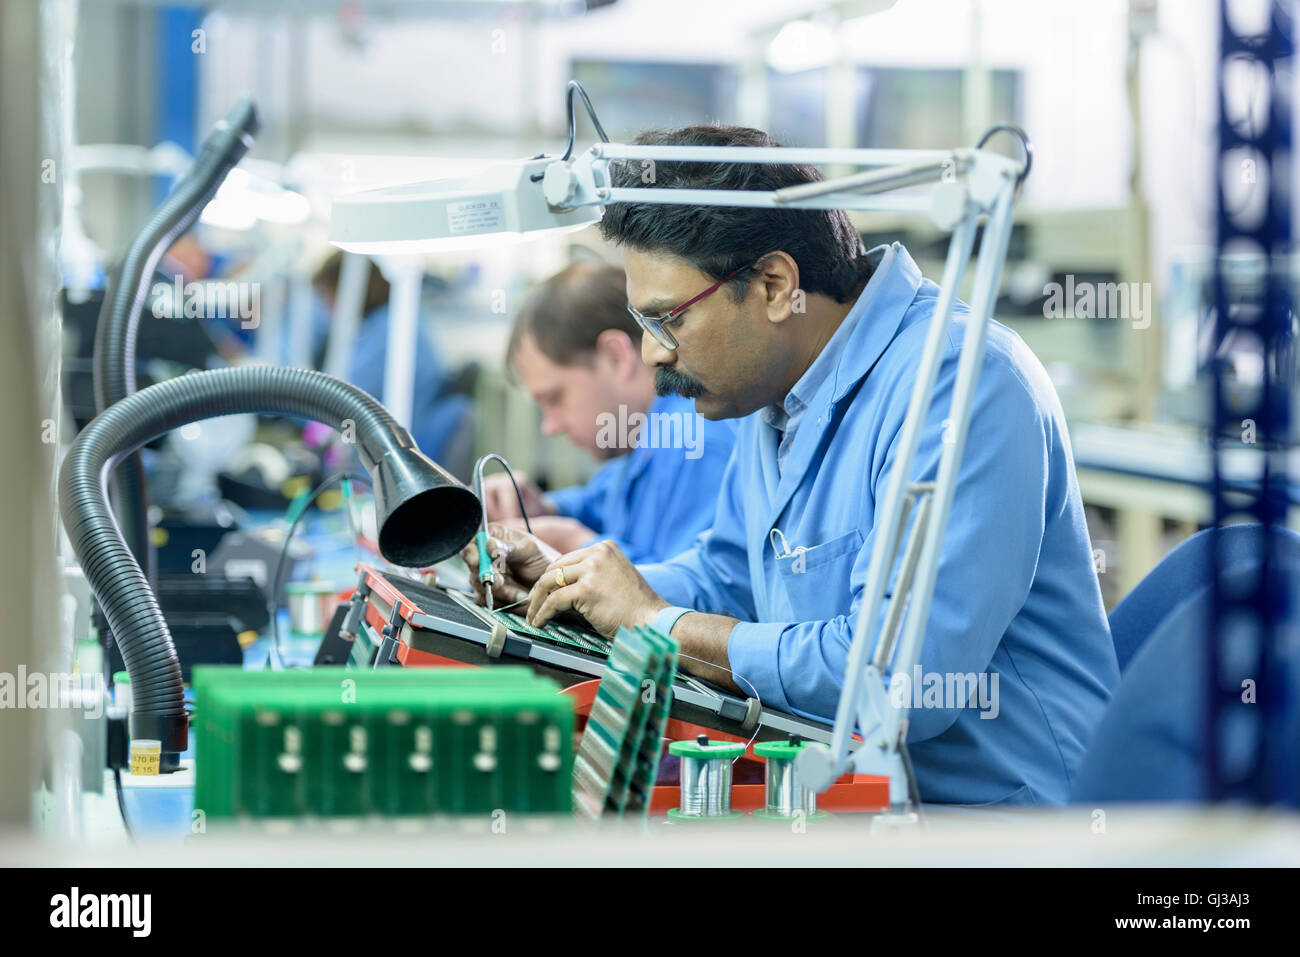 Soldering Circuit Board Stock Photos Electronic Assembly Jobs Worker Component Onto Boards In Factory Image